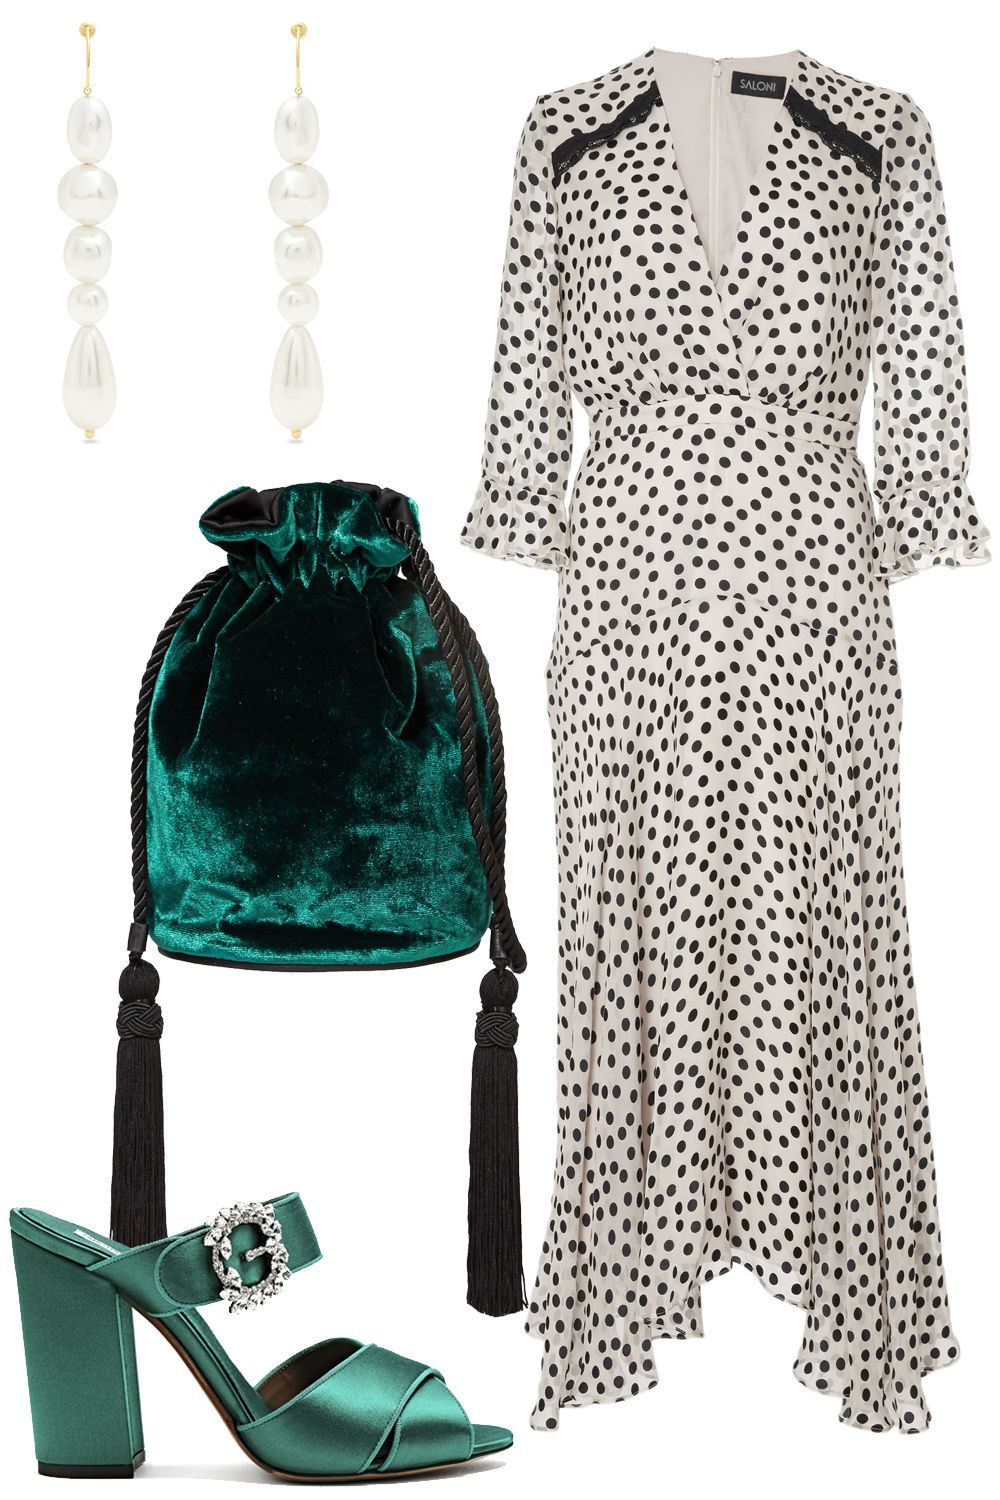 Best dresses to wear to a spring wedding  The Best Dressed Guest What to Wear to a Spring Wedding  Spring